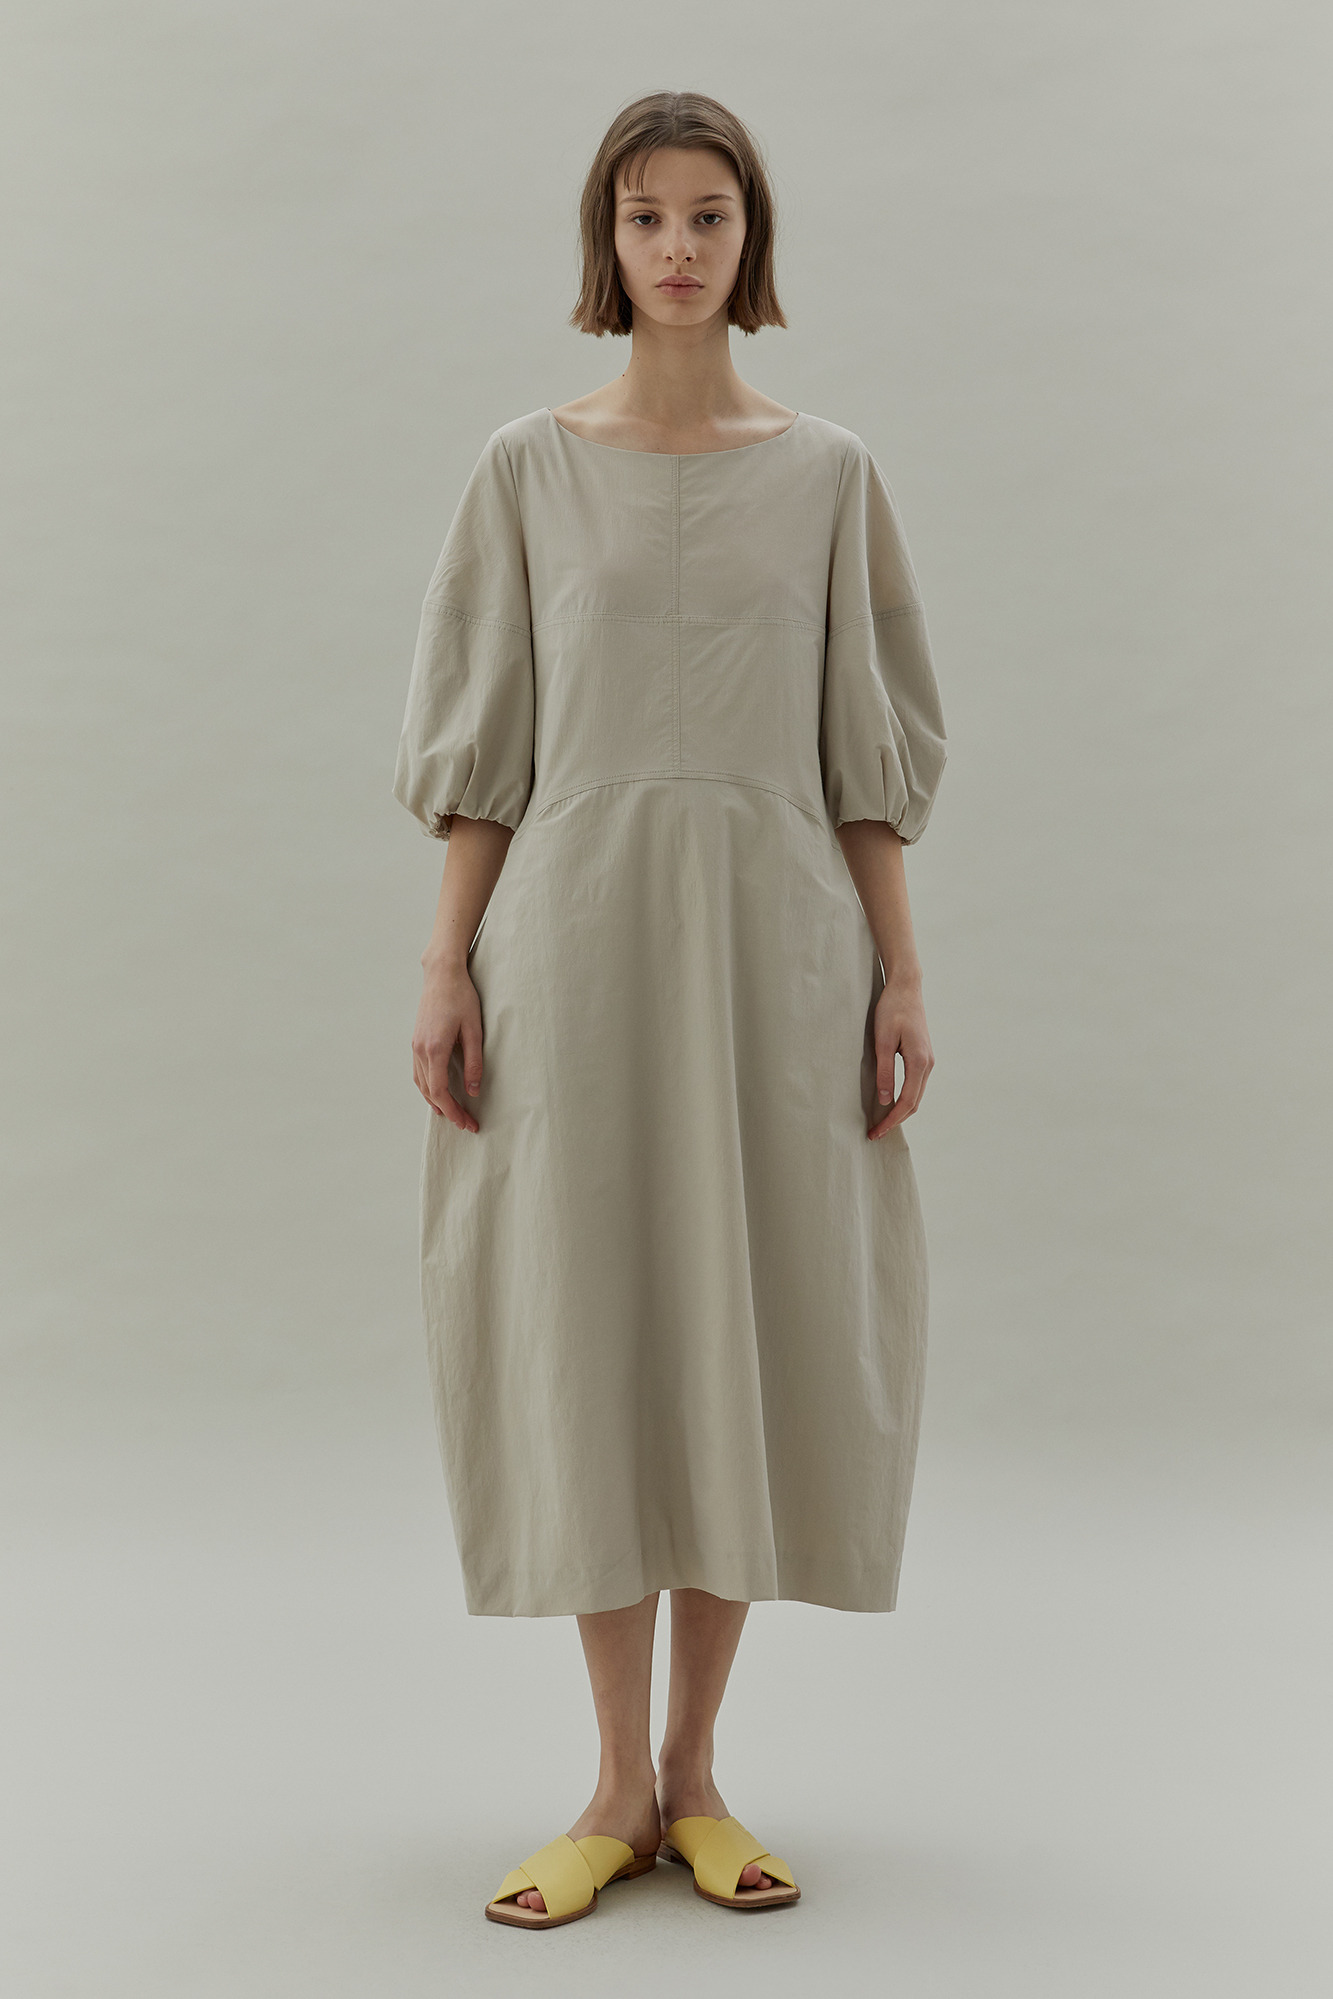 [3/6 예약배송] 20SS VOLUME SLEEVE DRESS - BEIGE